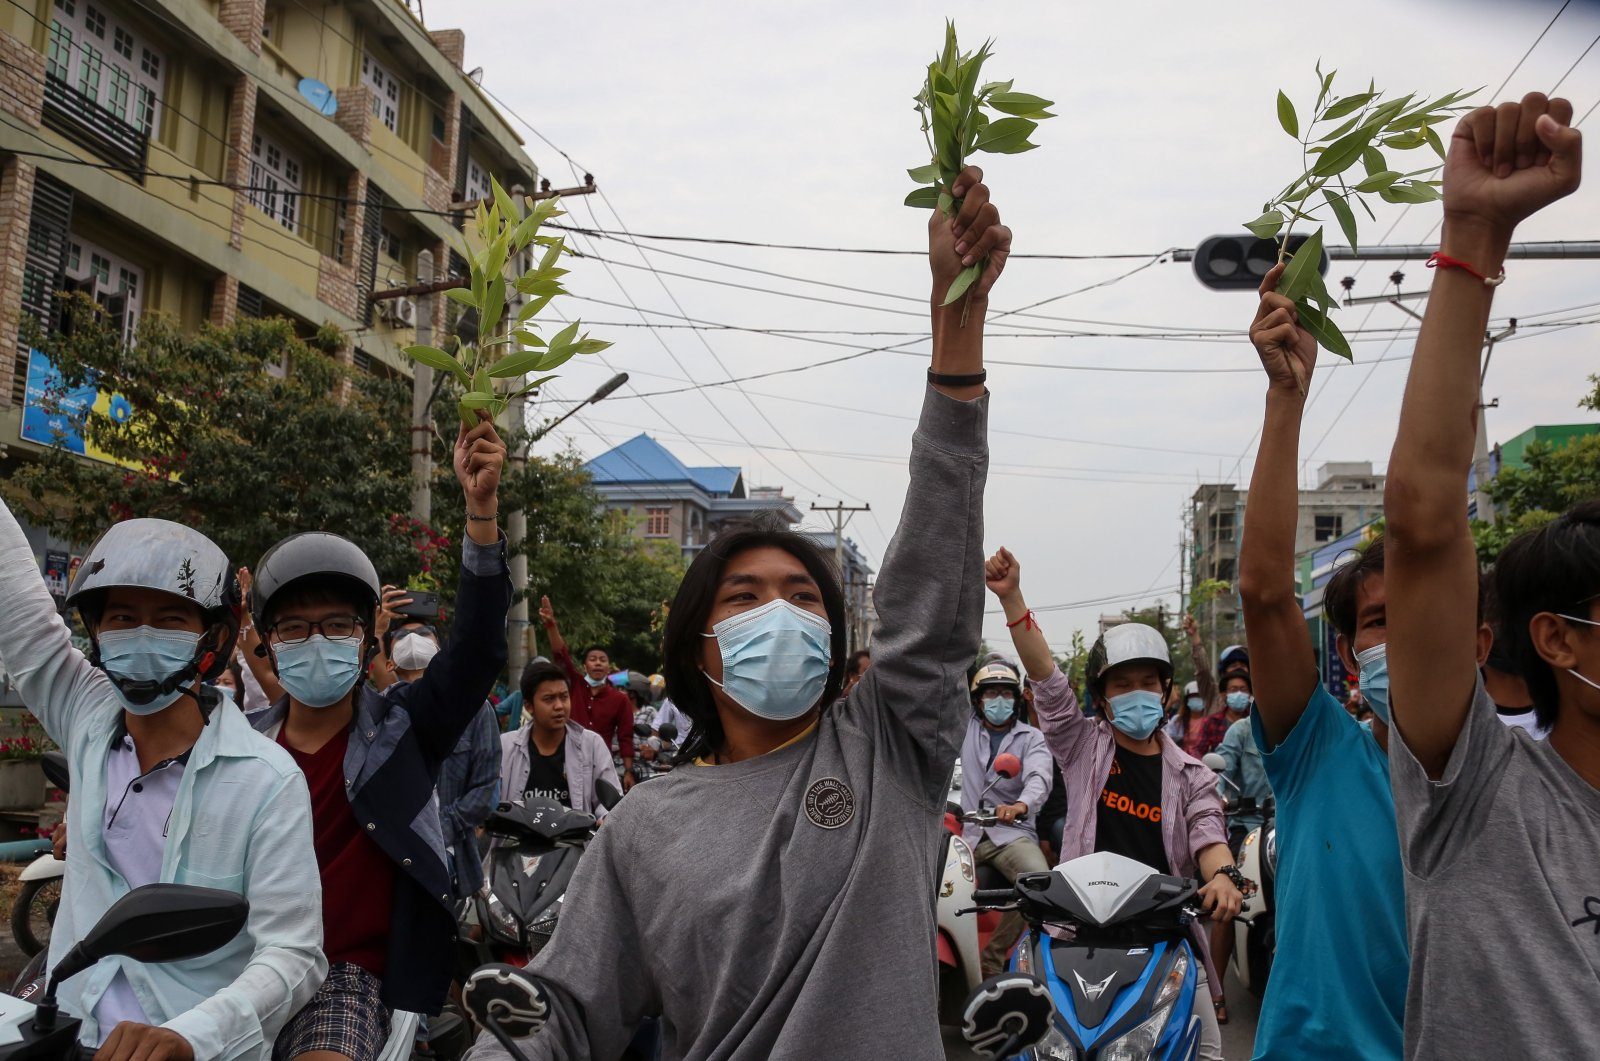 Demonstrators raise their fists during an anti-military coup protest in Mandalay, Myanmar, April 17, 2021. (EPA Photo)